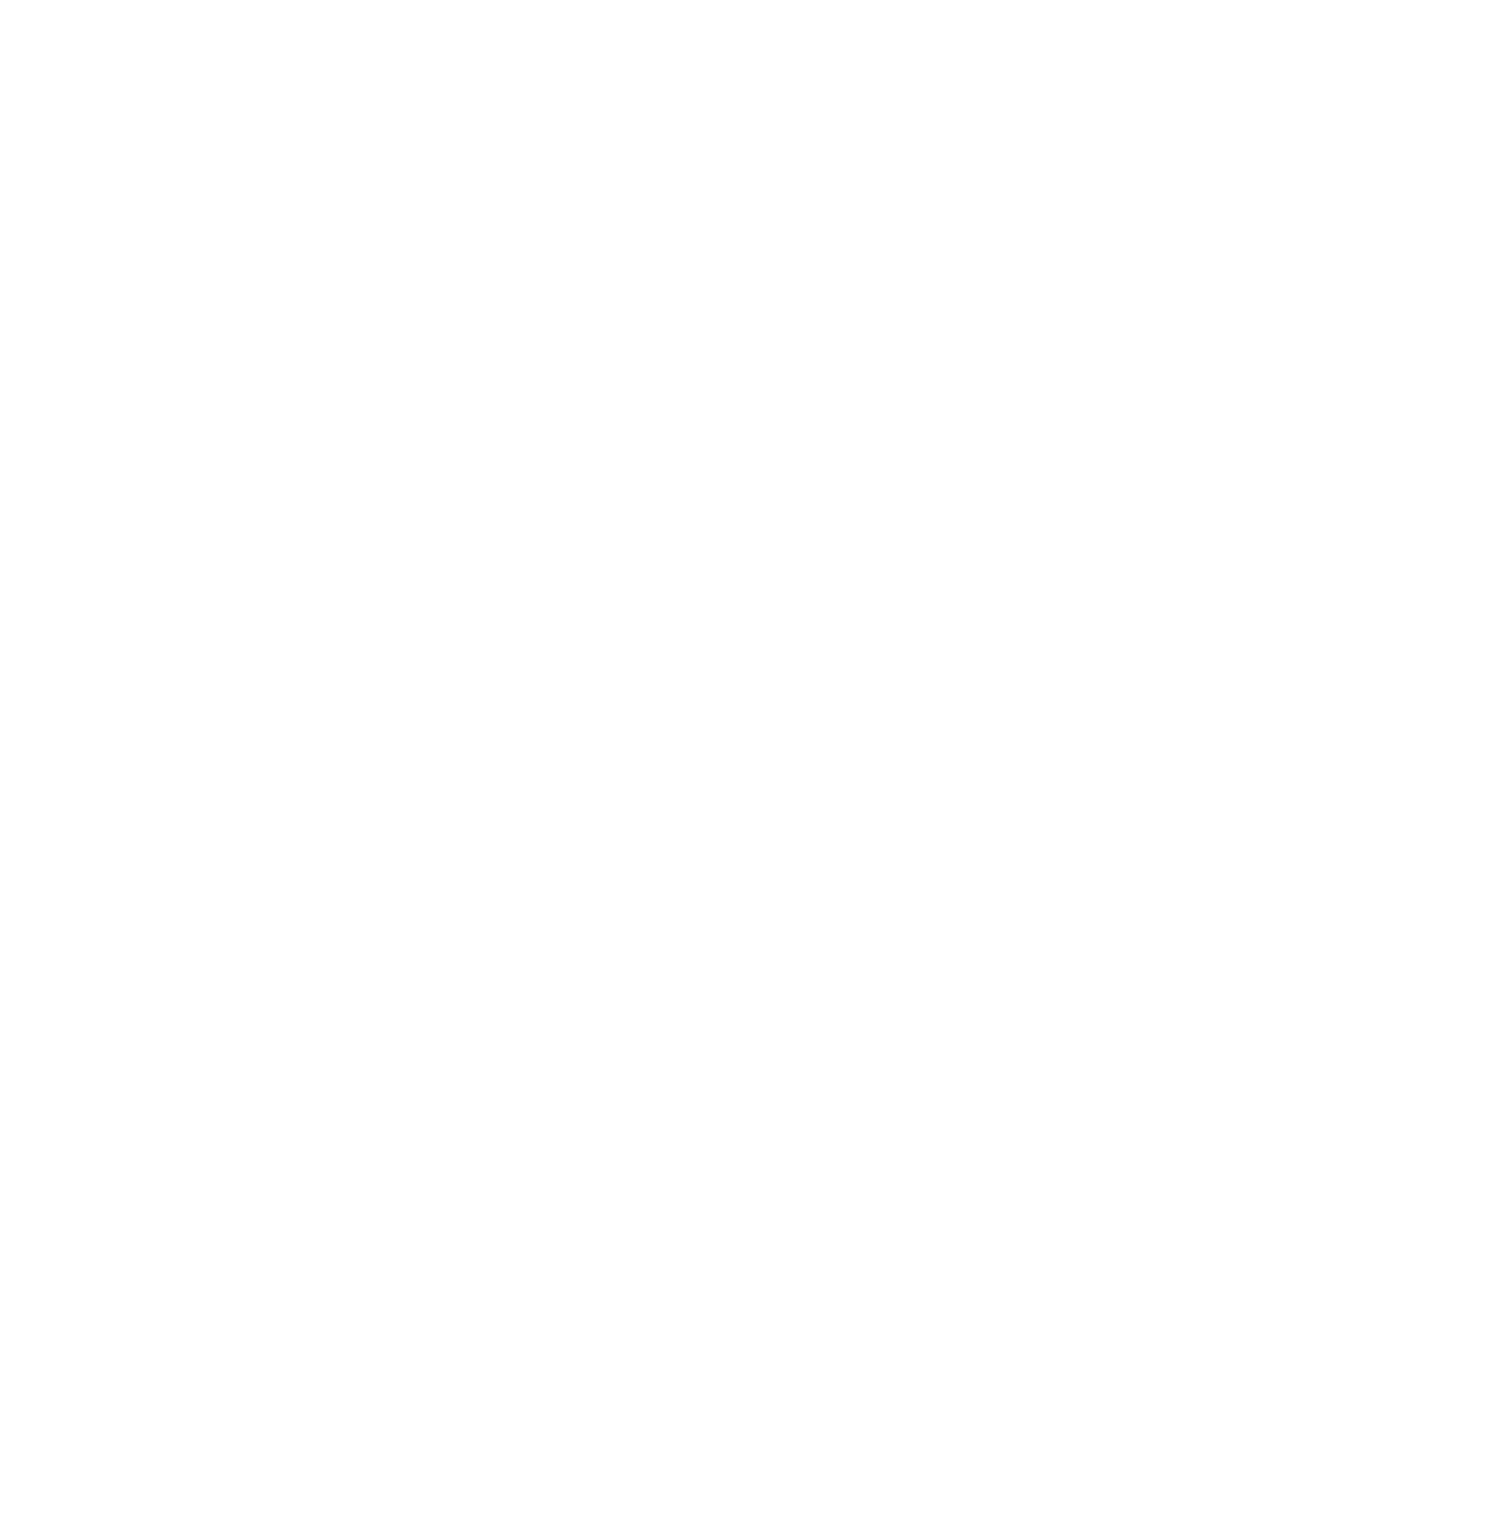 Powers Group